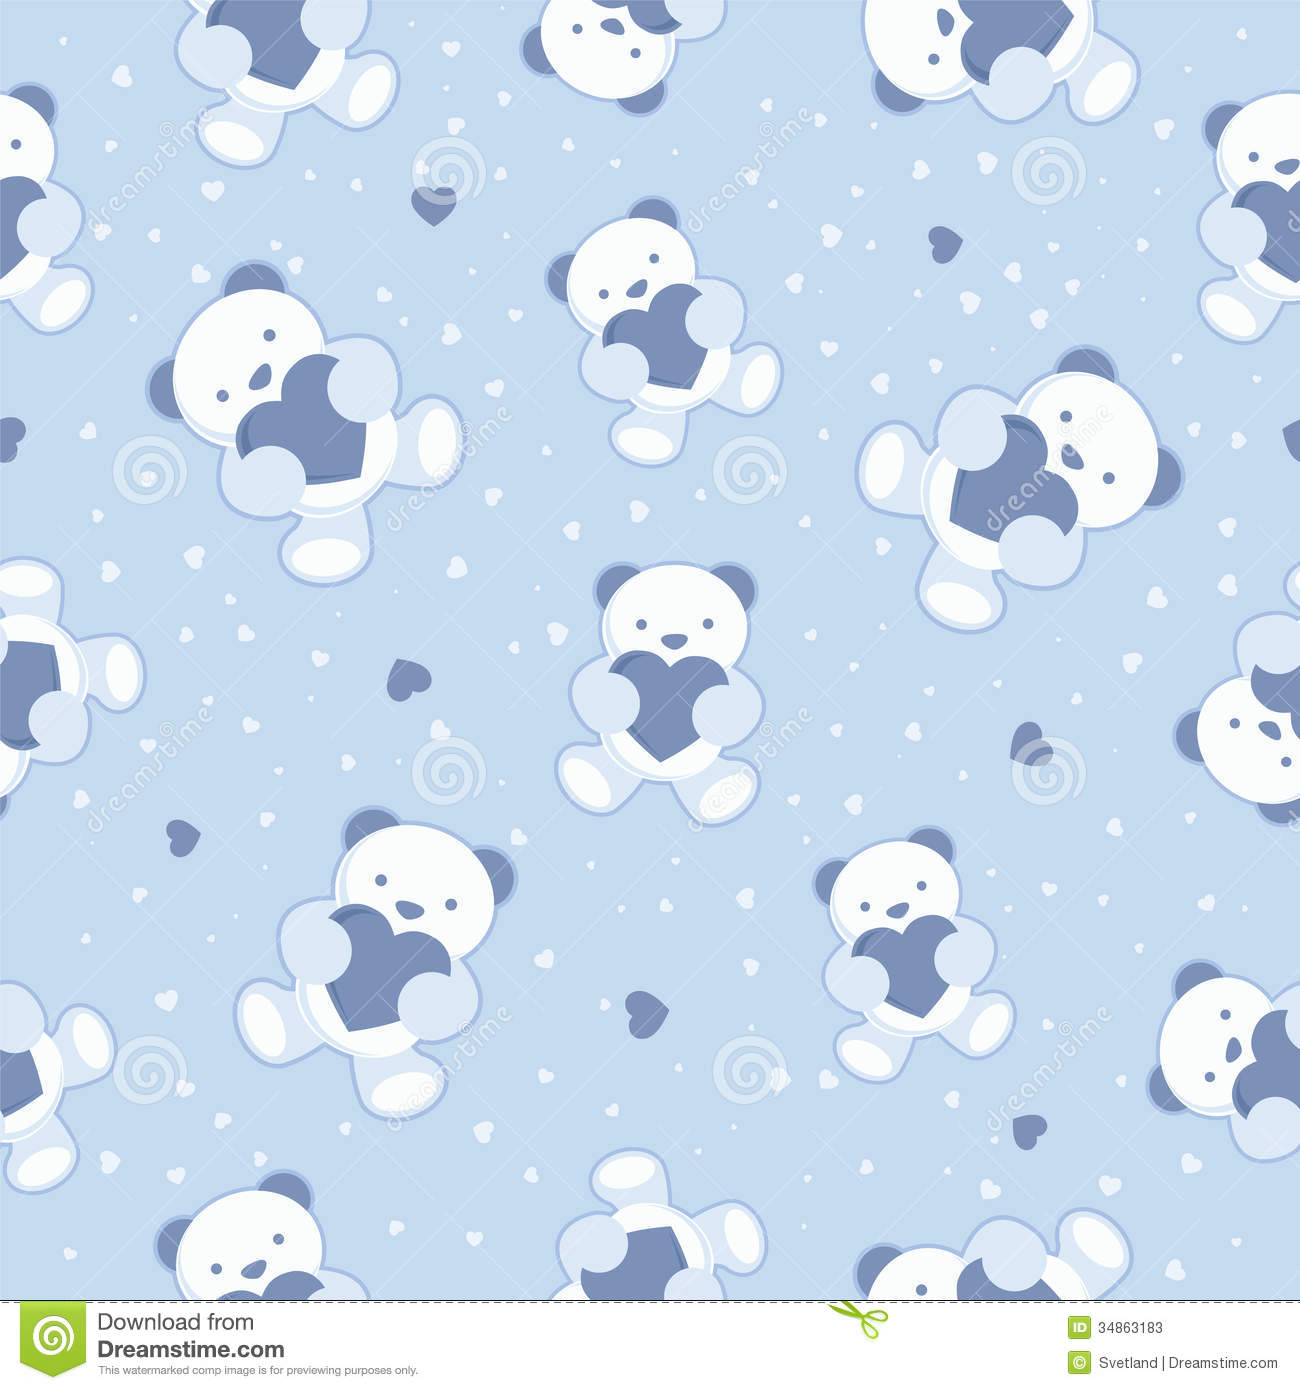 Seamless Blue Baby Background With Teddy Bear And Royalty Free Illustration